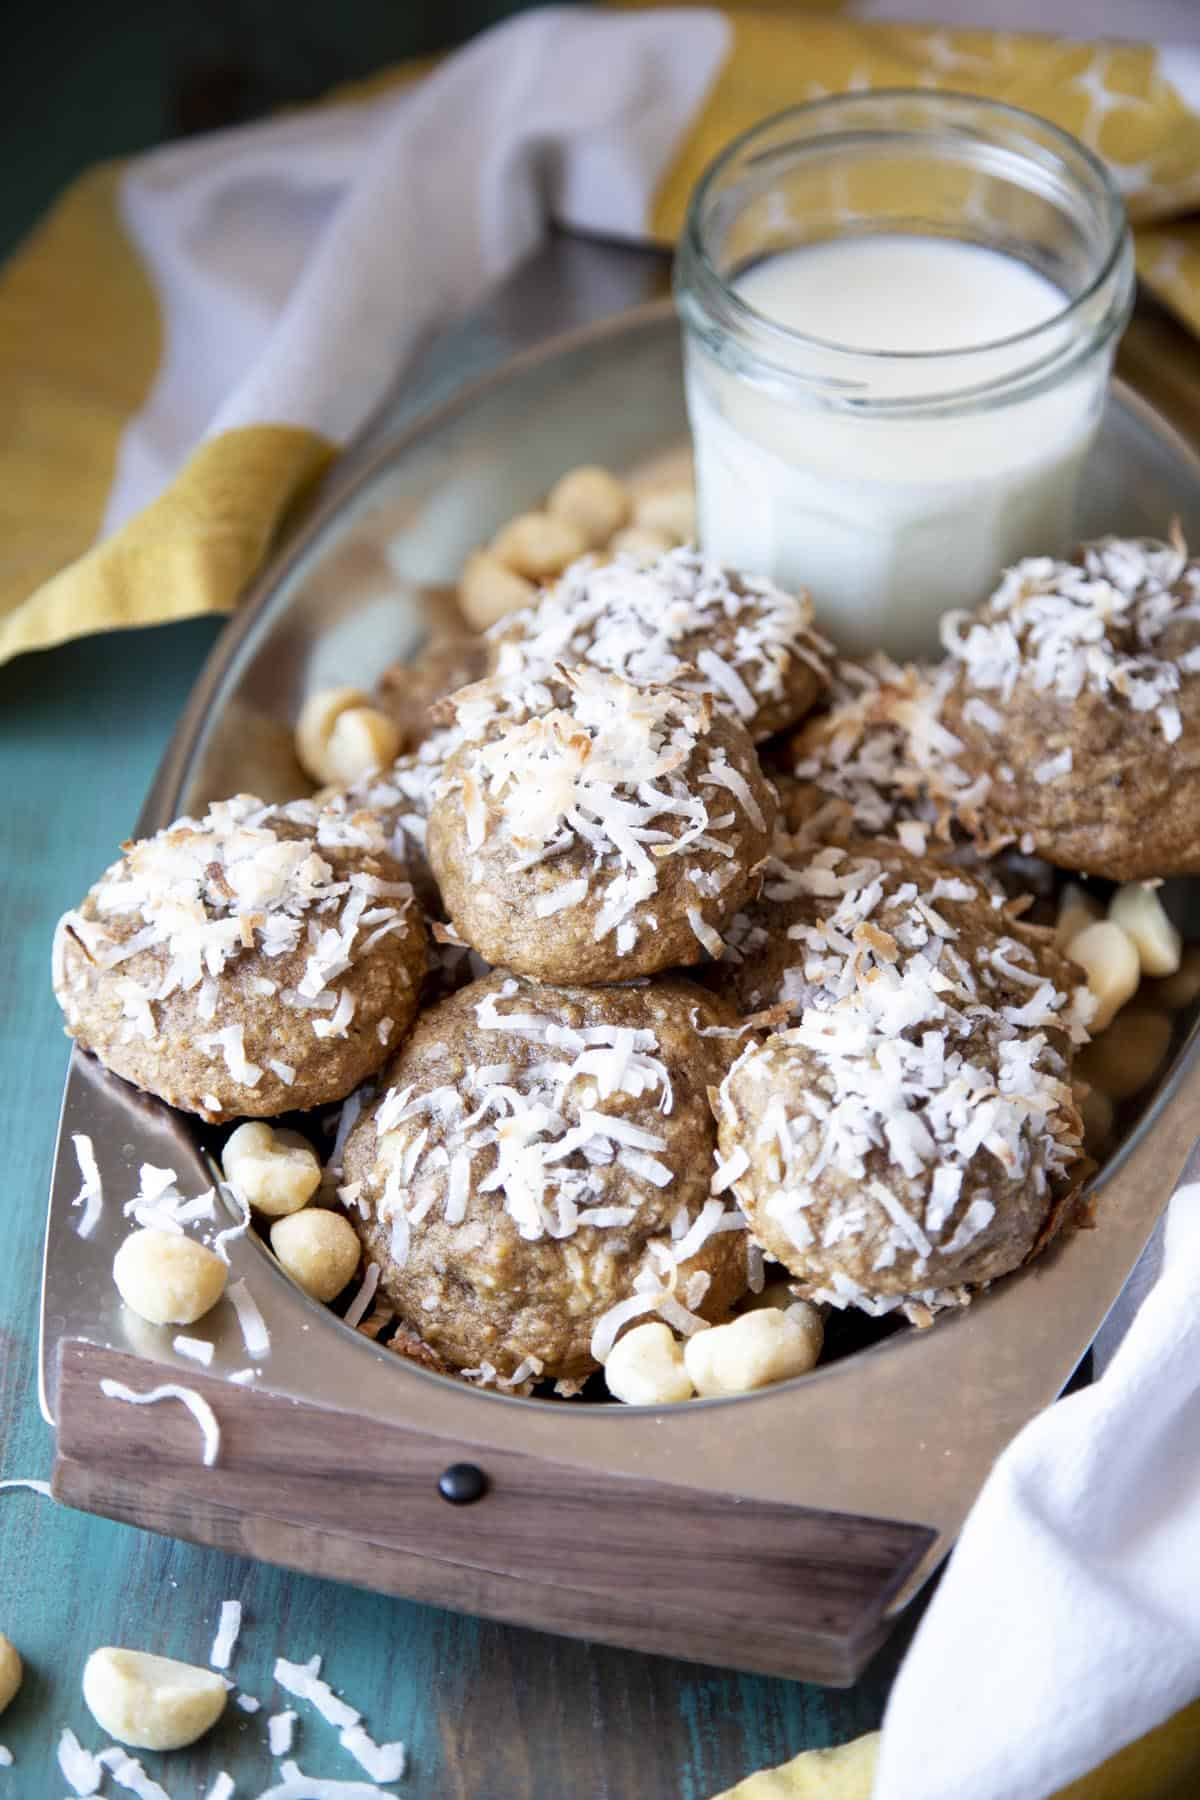 Banana cookies in a serving tray with a glass of milk.